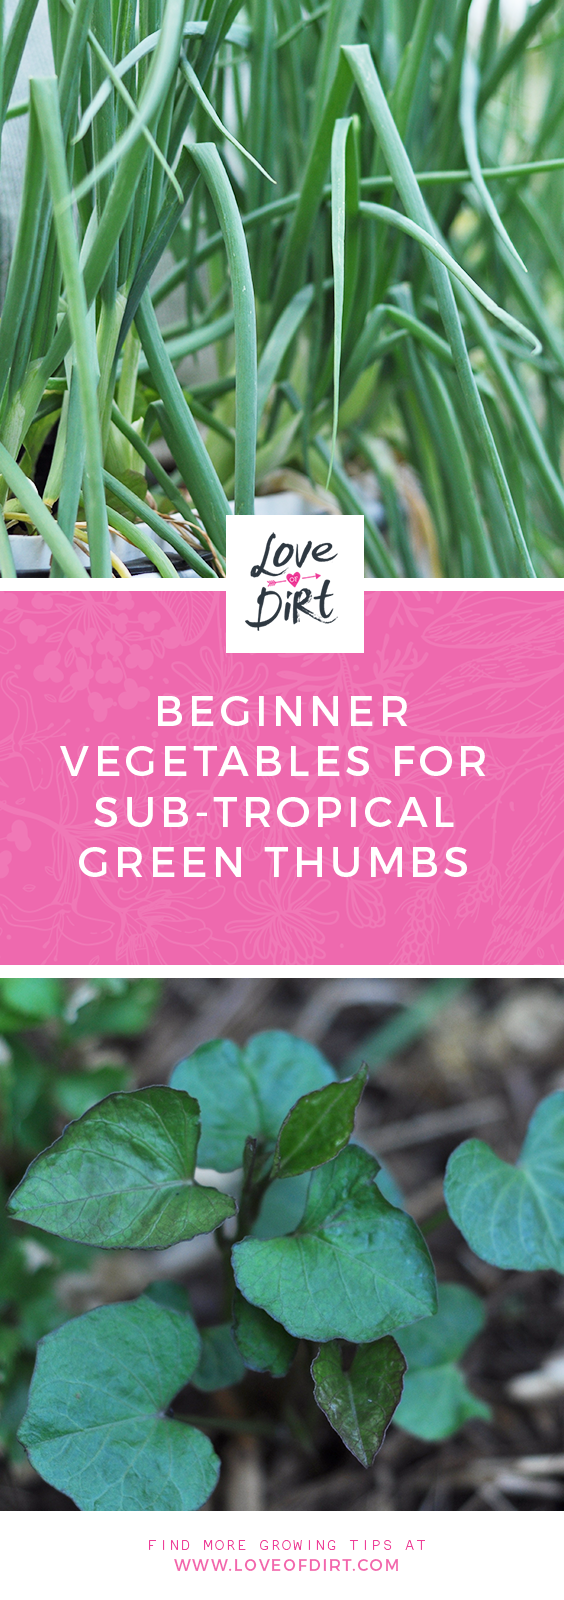 Beginner Vegetables to grow for sub-tropical green thumbs